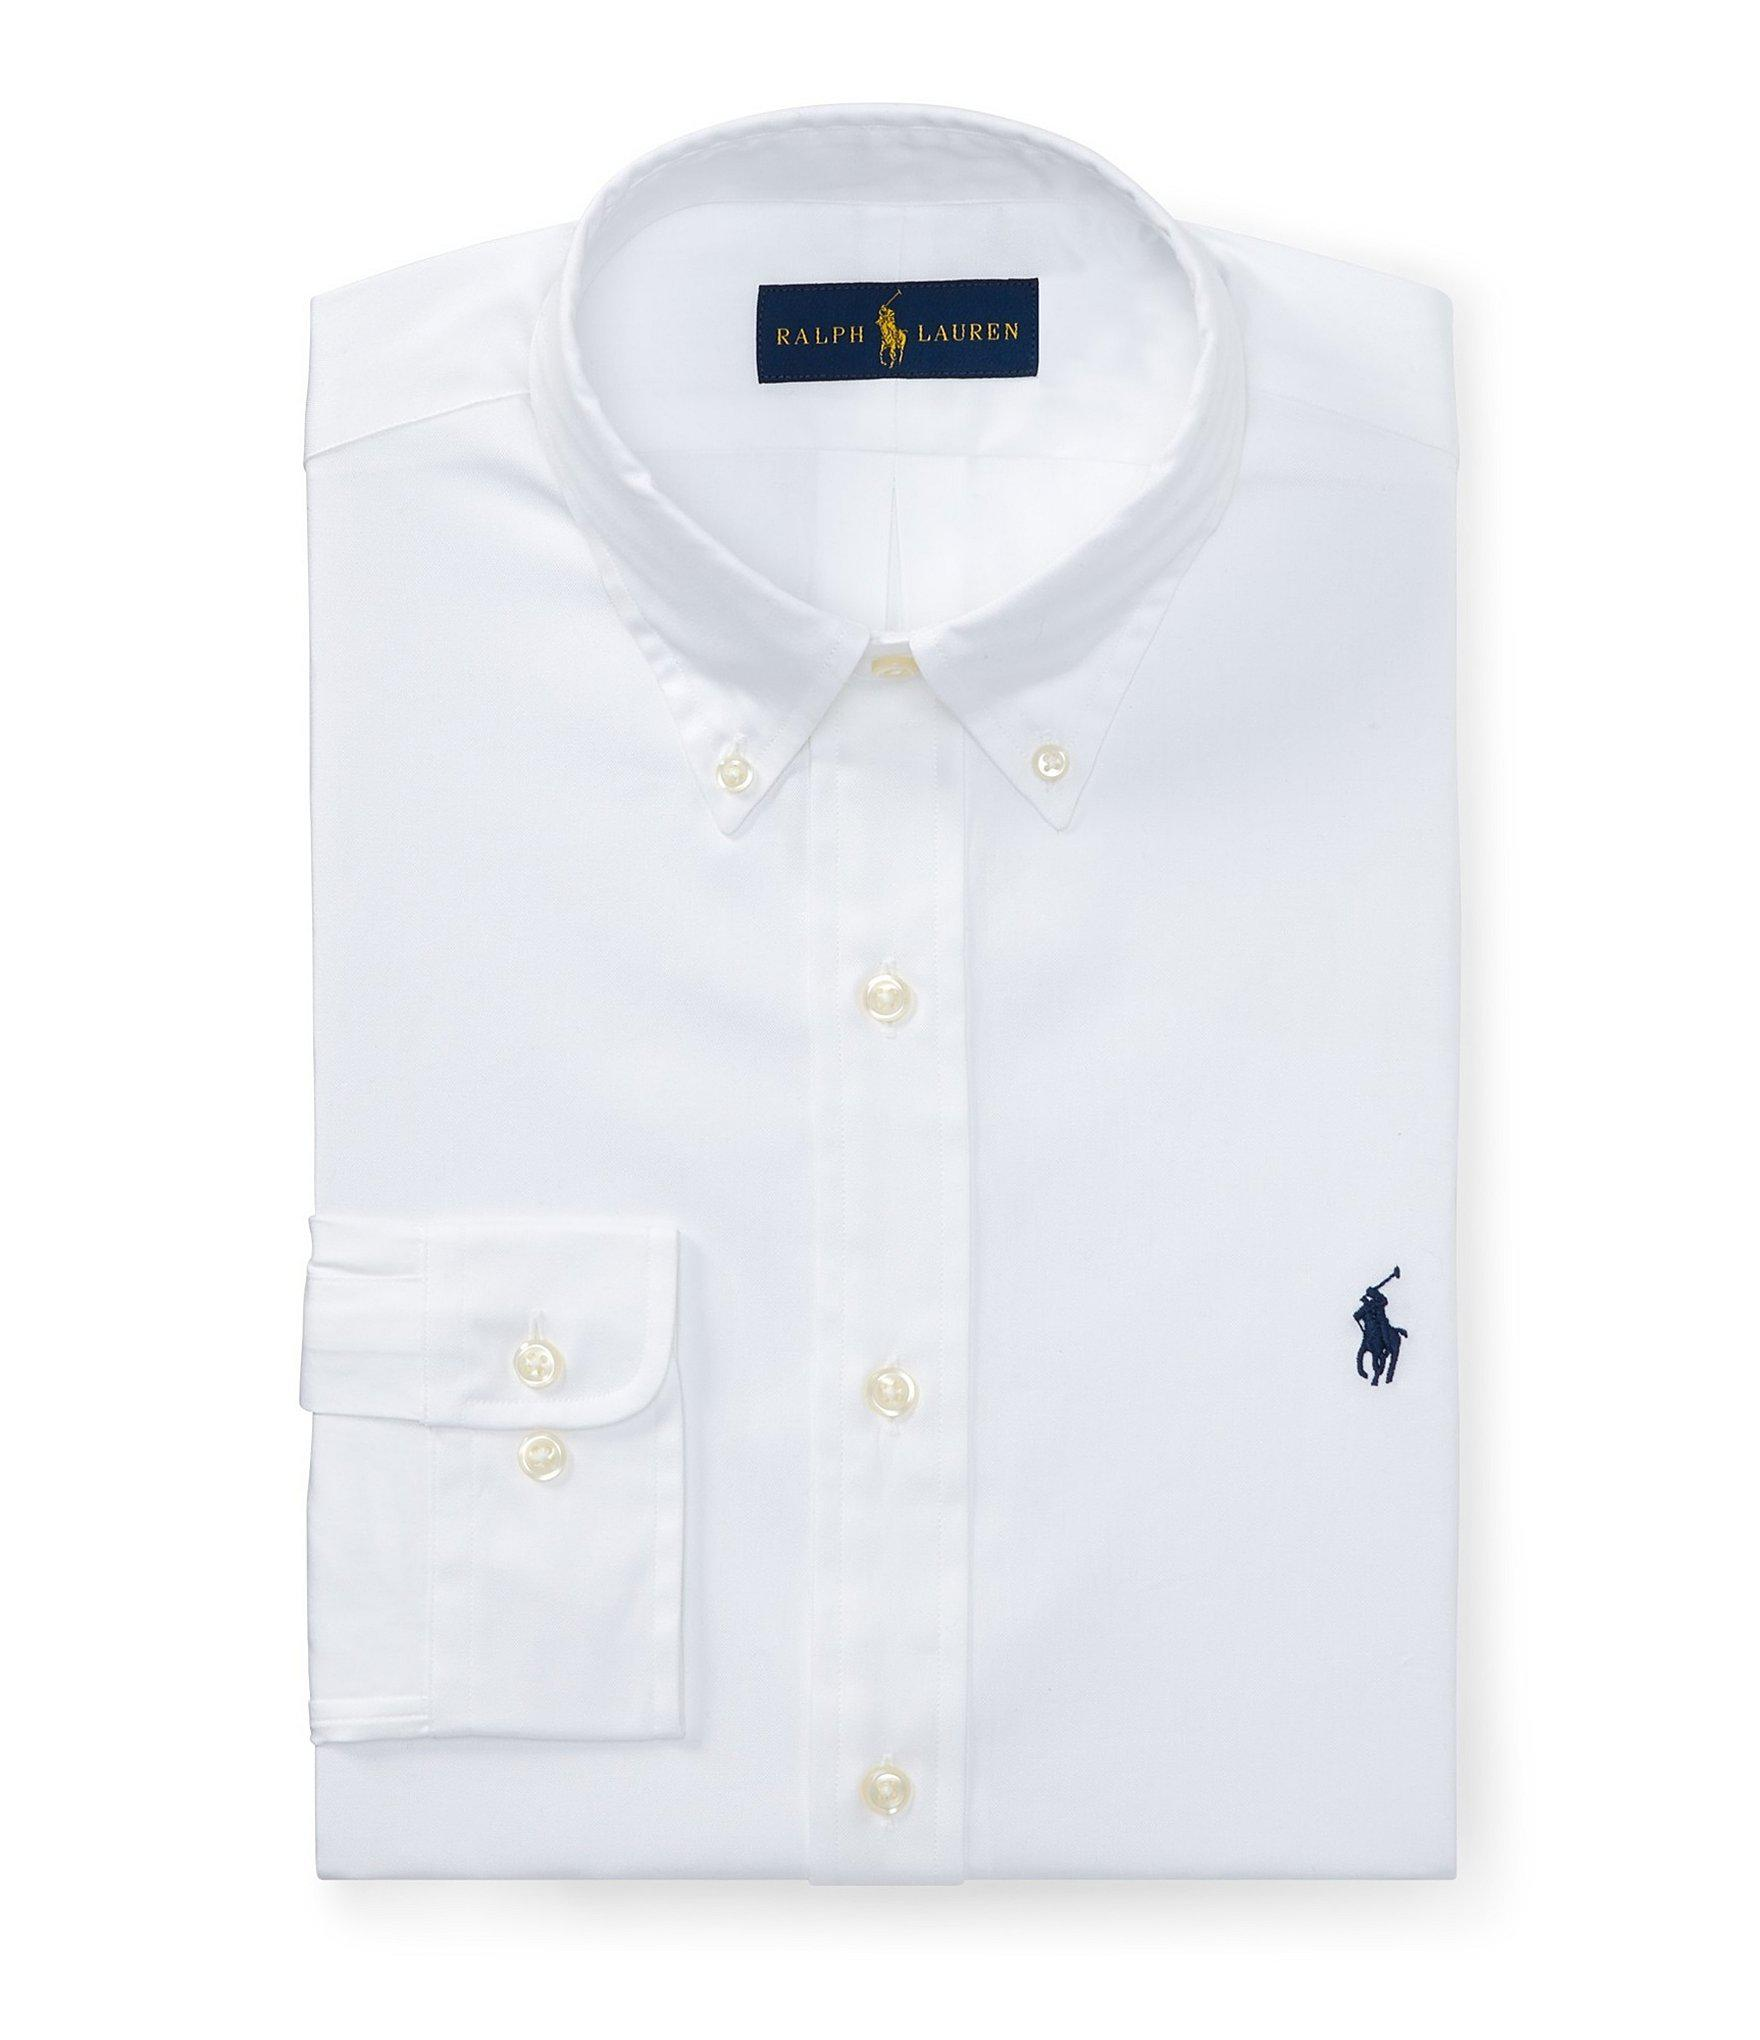 Lyst Polo Ralph Lauren Fitted Classic Fit Solid Oxford Dress Shirt